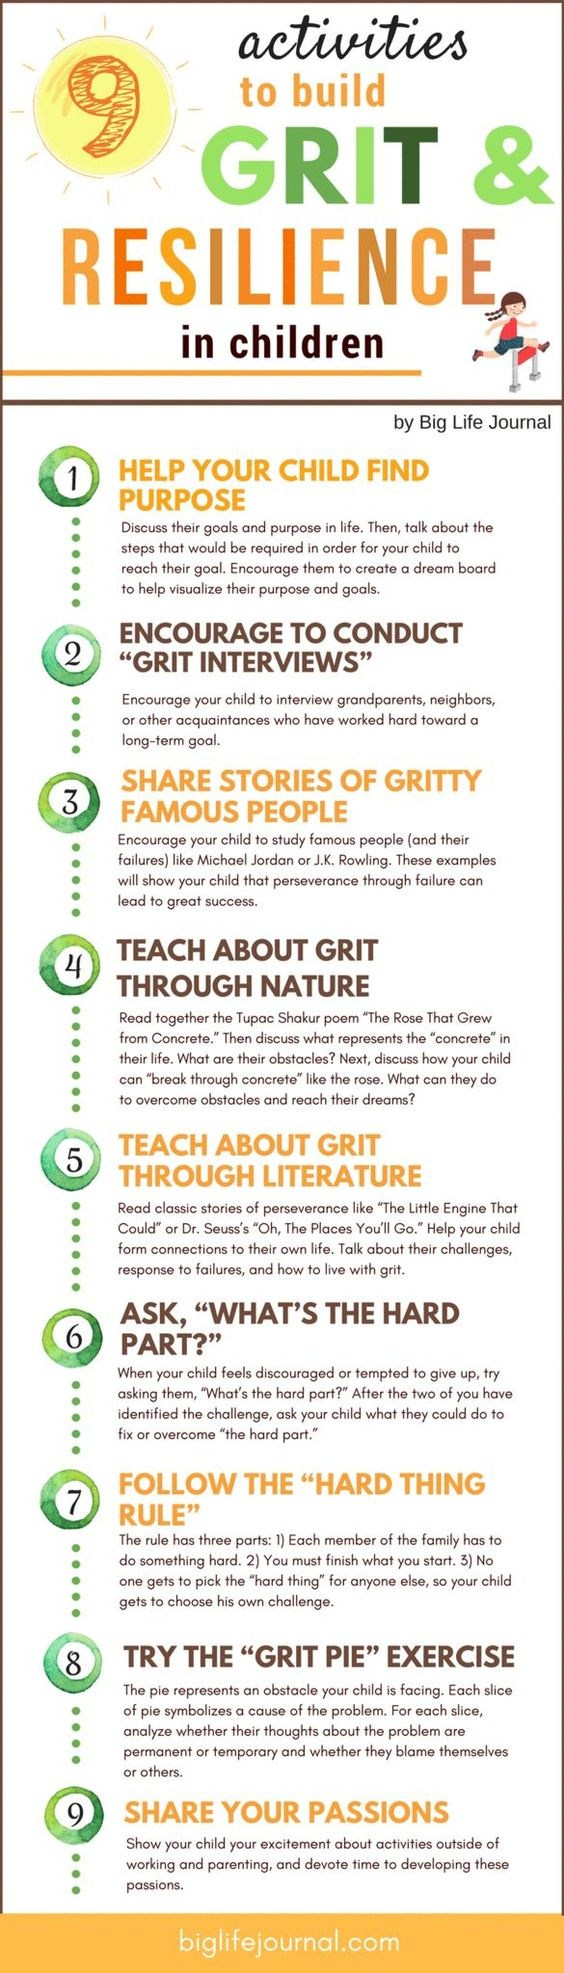 9 activities to grit and resilience picture